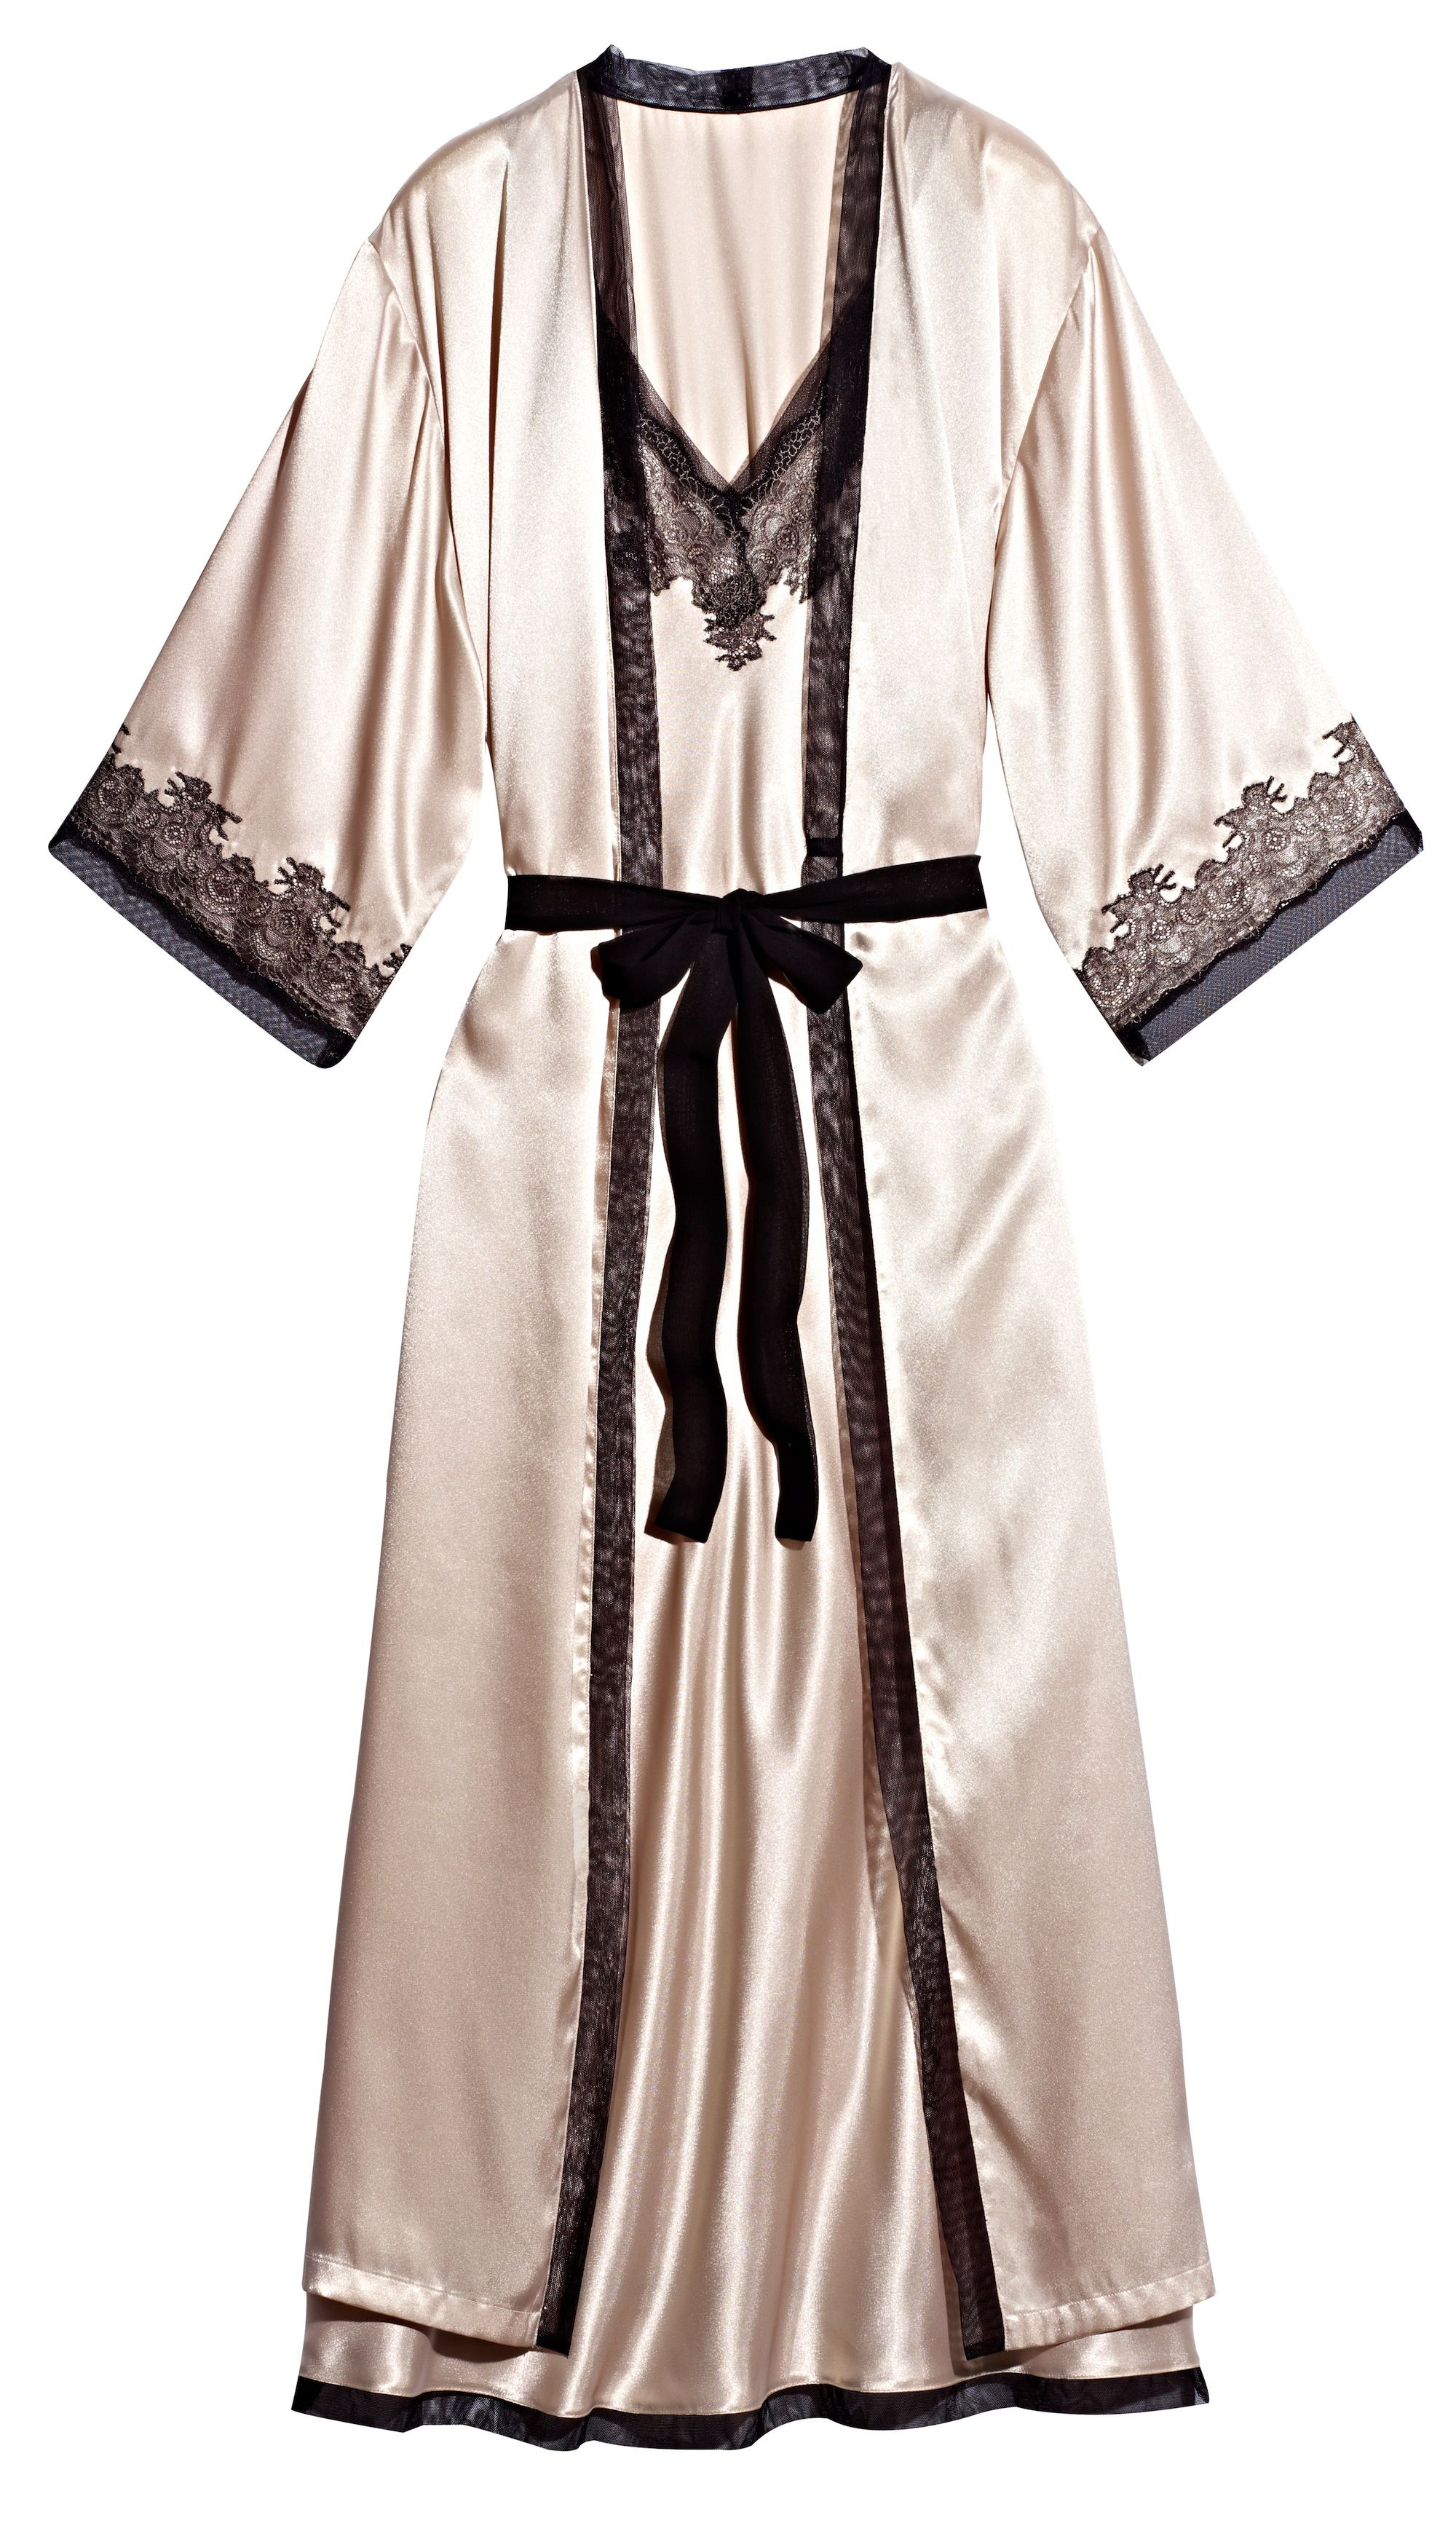 5ac4682d67 StandoutGifts for your sleep!  T.J.Maxx Silk Robe